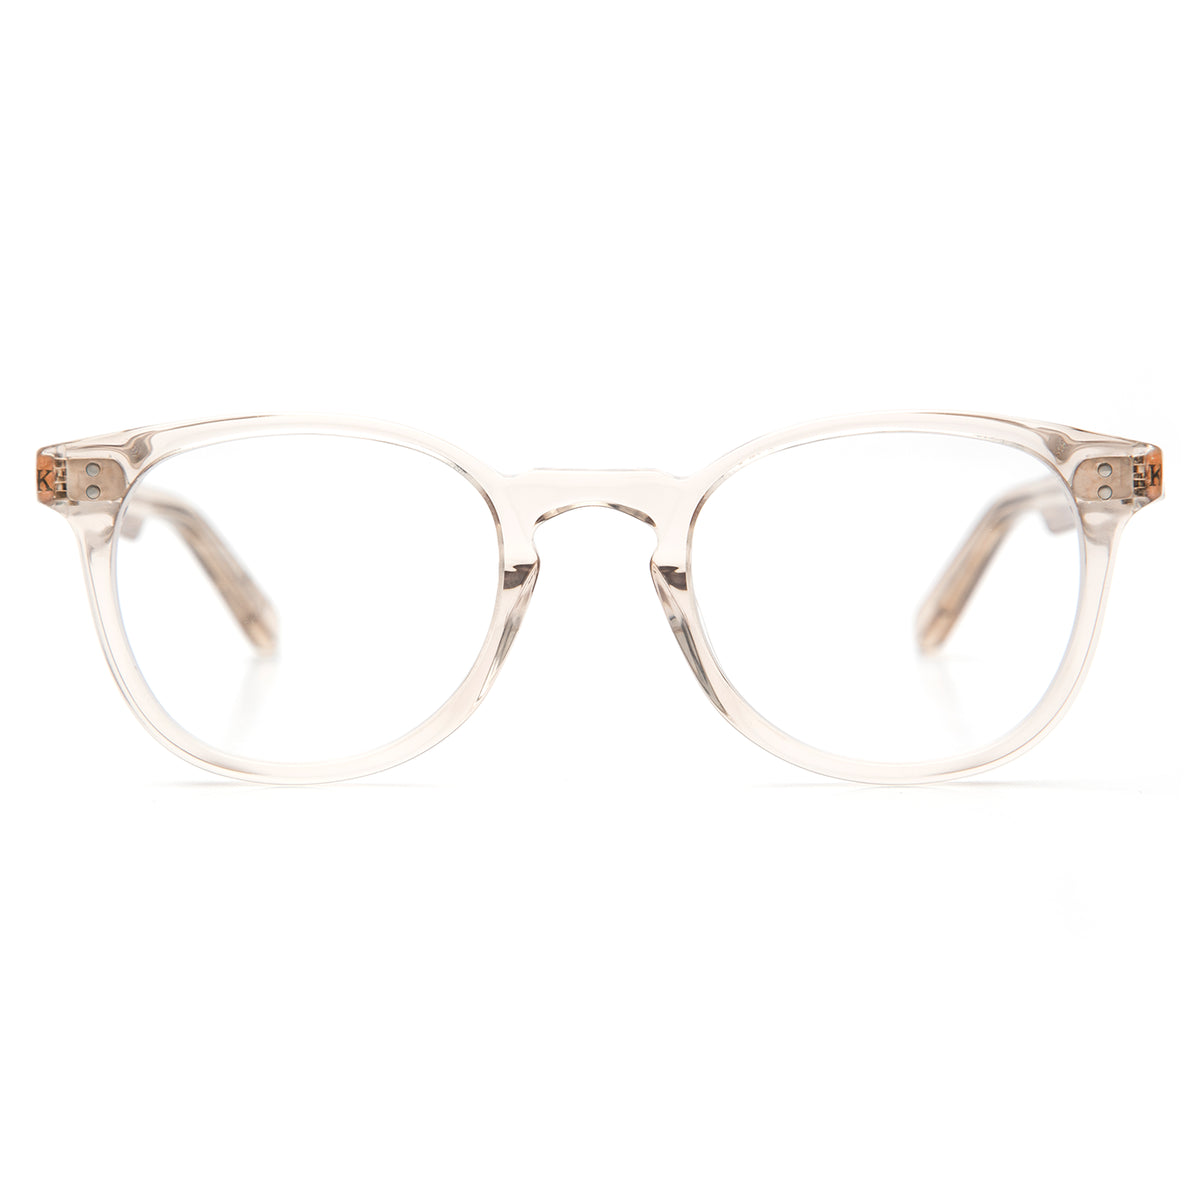 MARENGO | Buff- Handcrafted acetate Optical frames with a round silhouette.